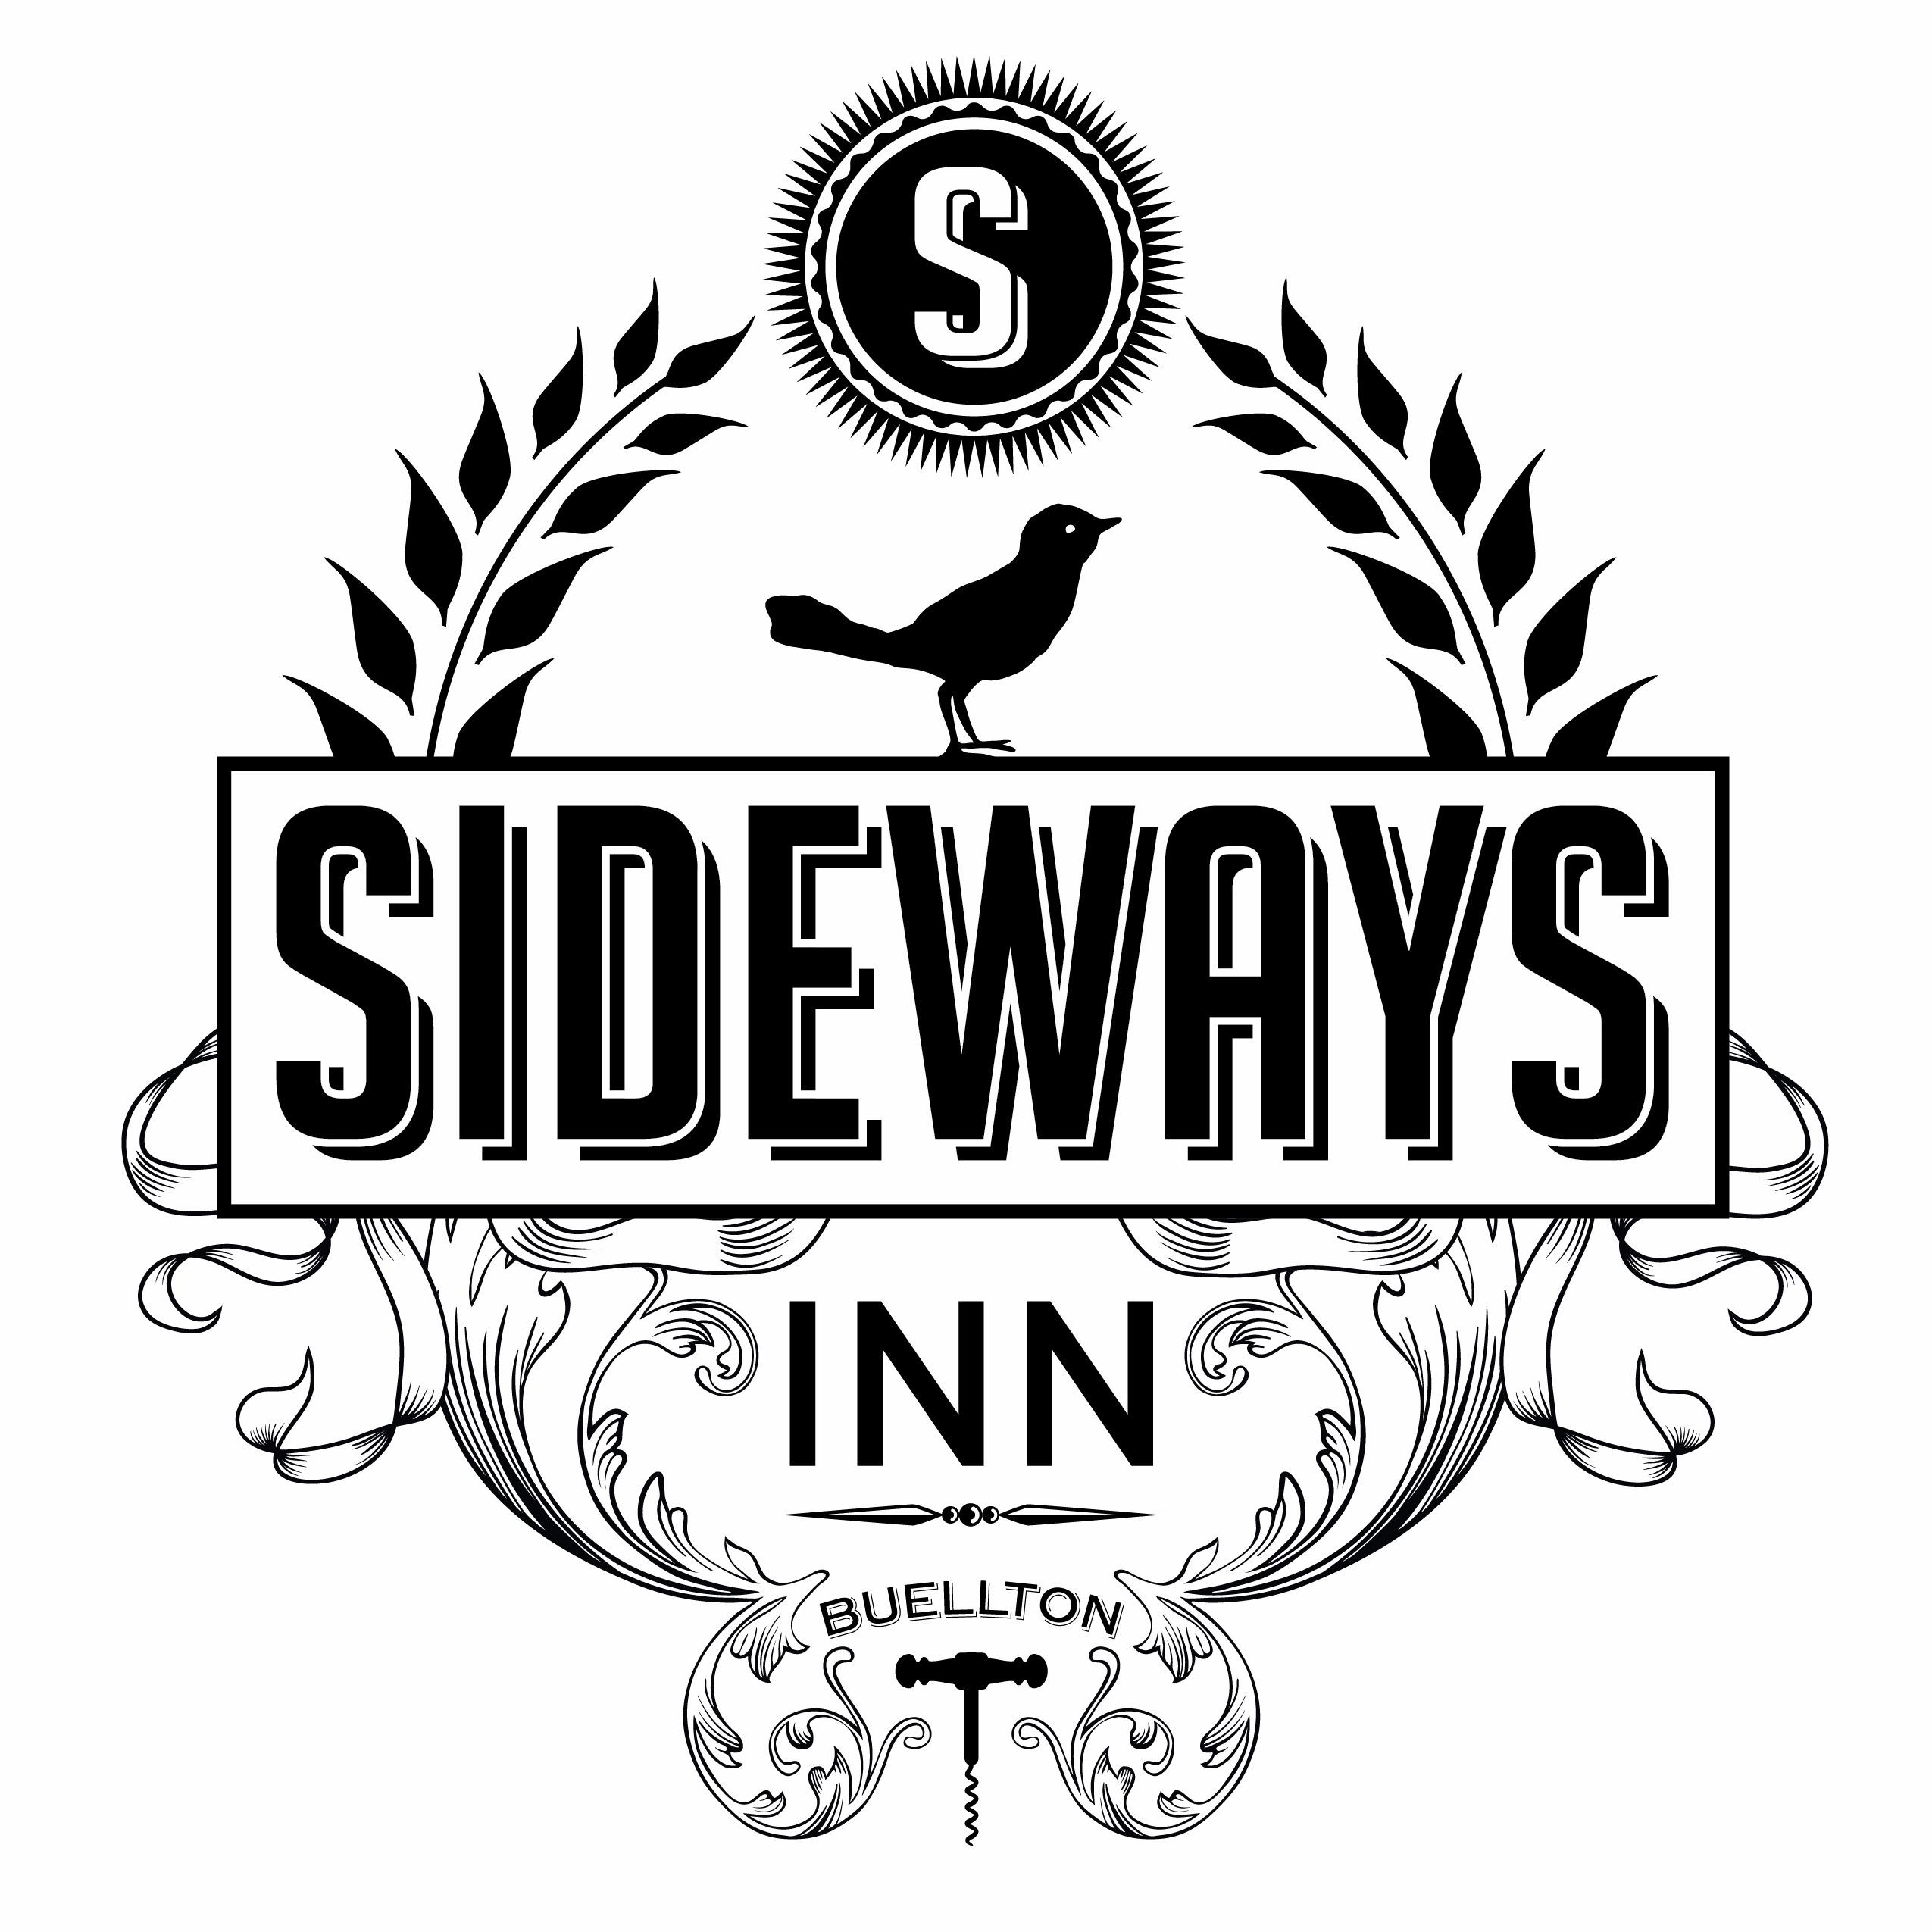 Sideways Inn - Buellton, CA - Hotels & Motels